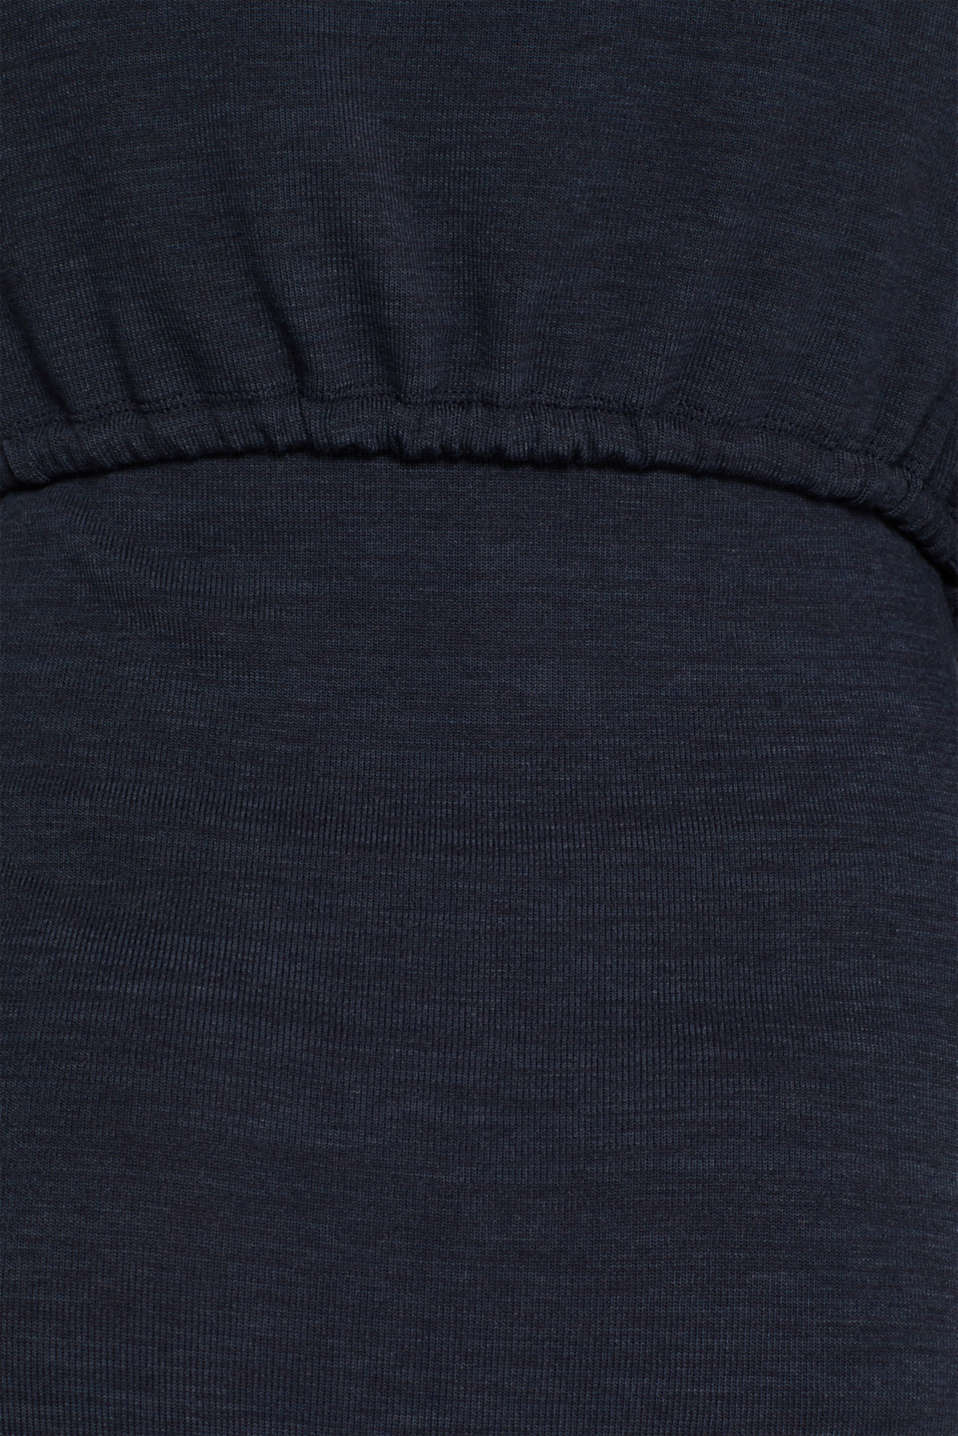 Stretch jersey nursing dress, LCNIGHT BLUE, detail image number 4